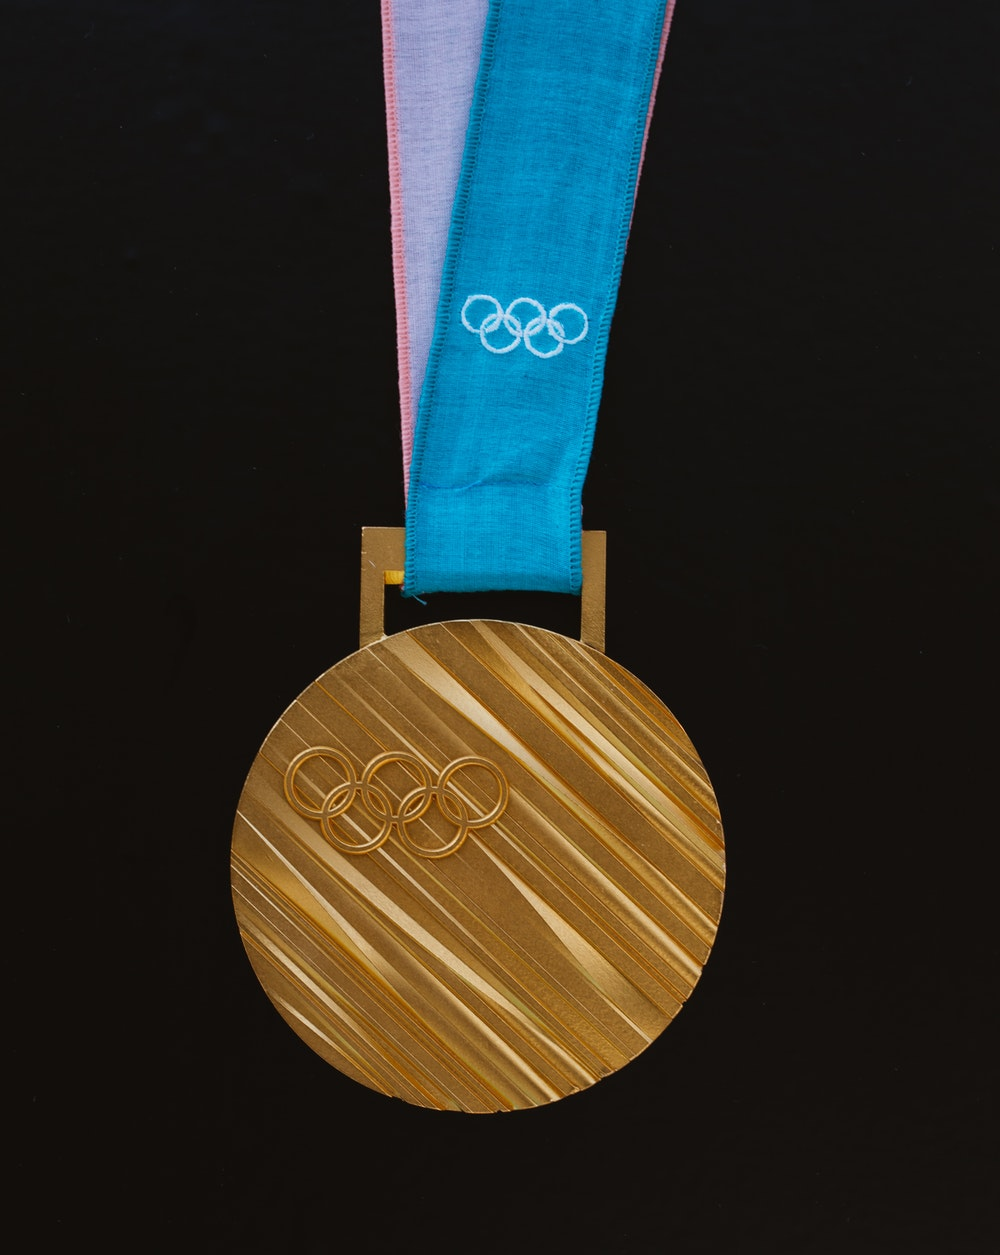 1000x1255 - Olympic Gold Metal Wallpapers 4